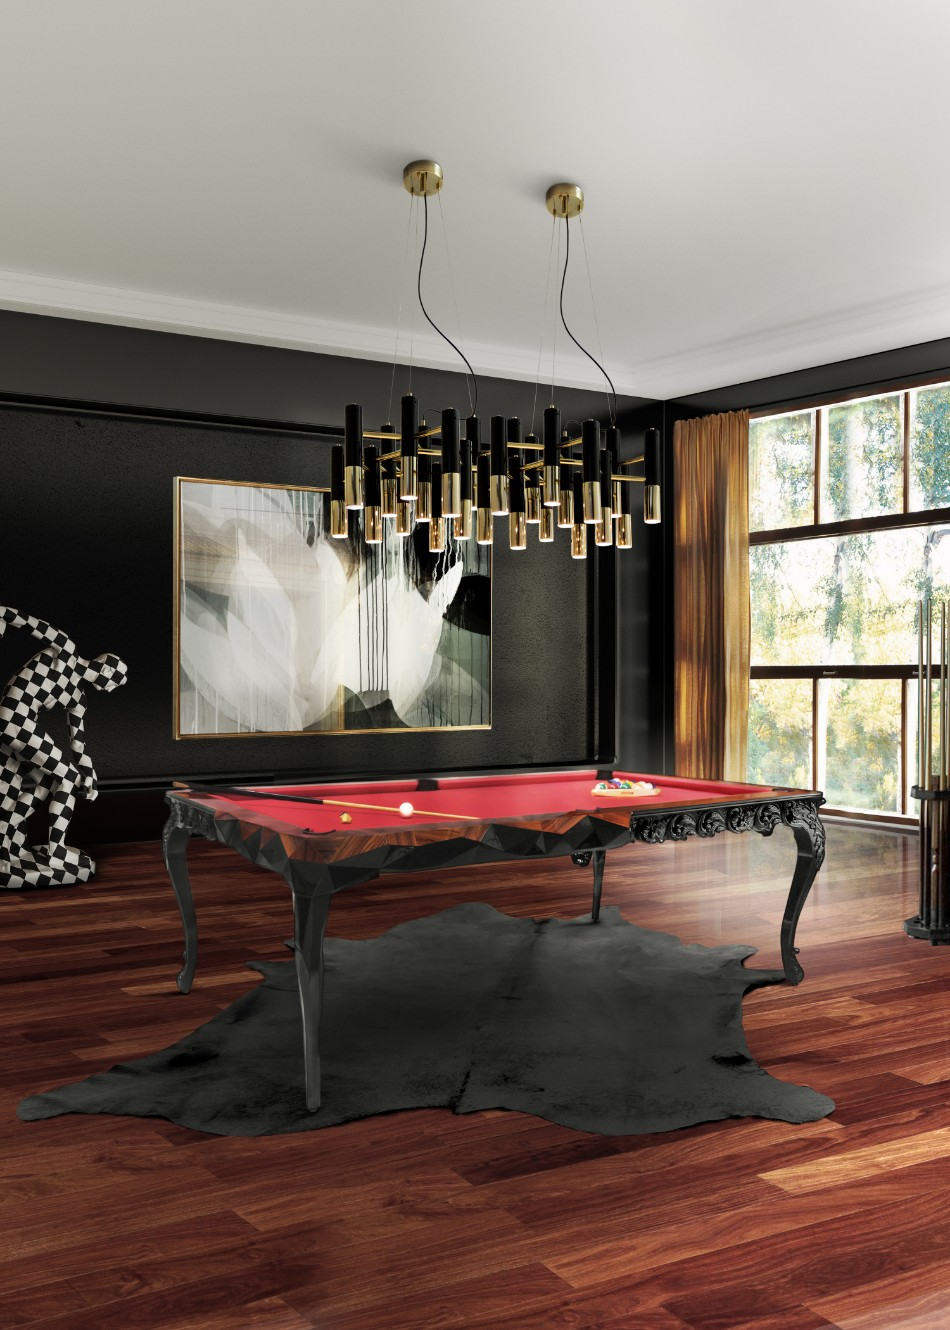 Multipurpose Dining Room Rethink Your Space: Multipurpose Dining Room Ideas royal snooker cover